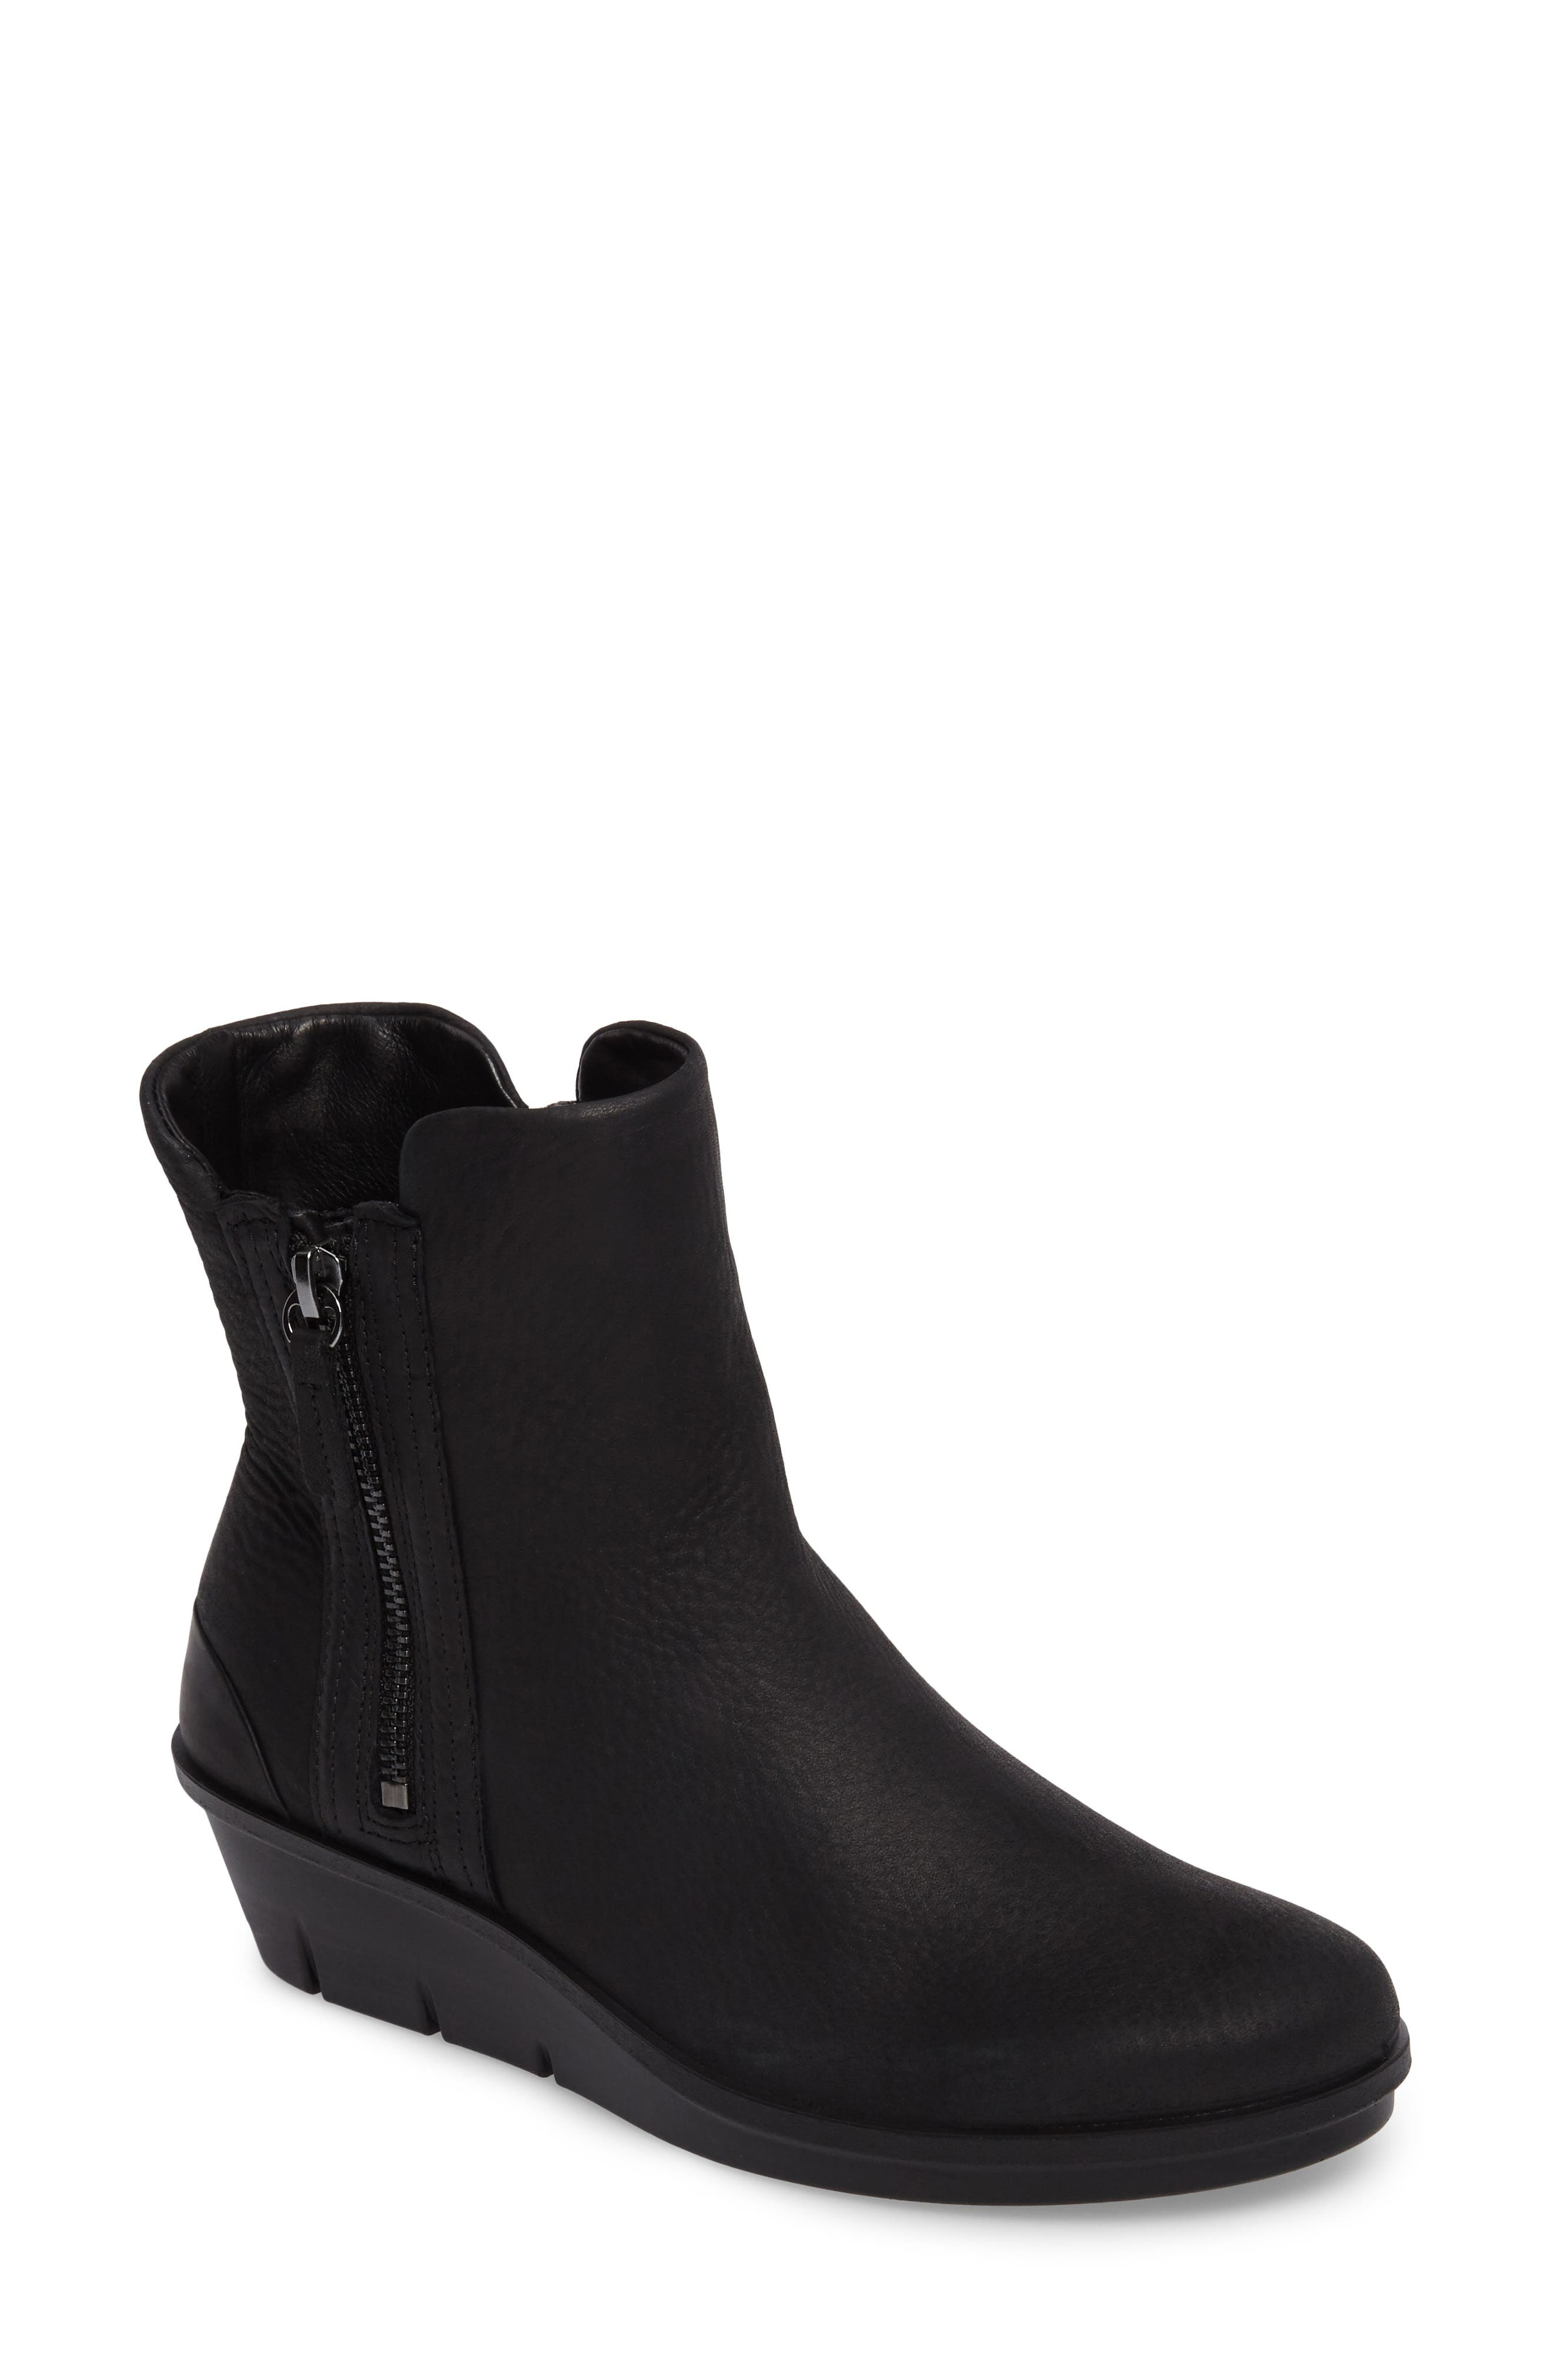 Skyler Notched Wedge Bootie,                         Main,                         color, 001